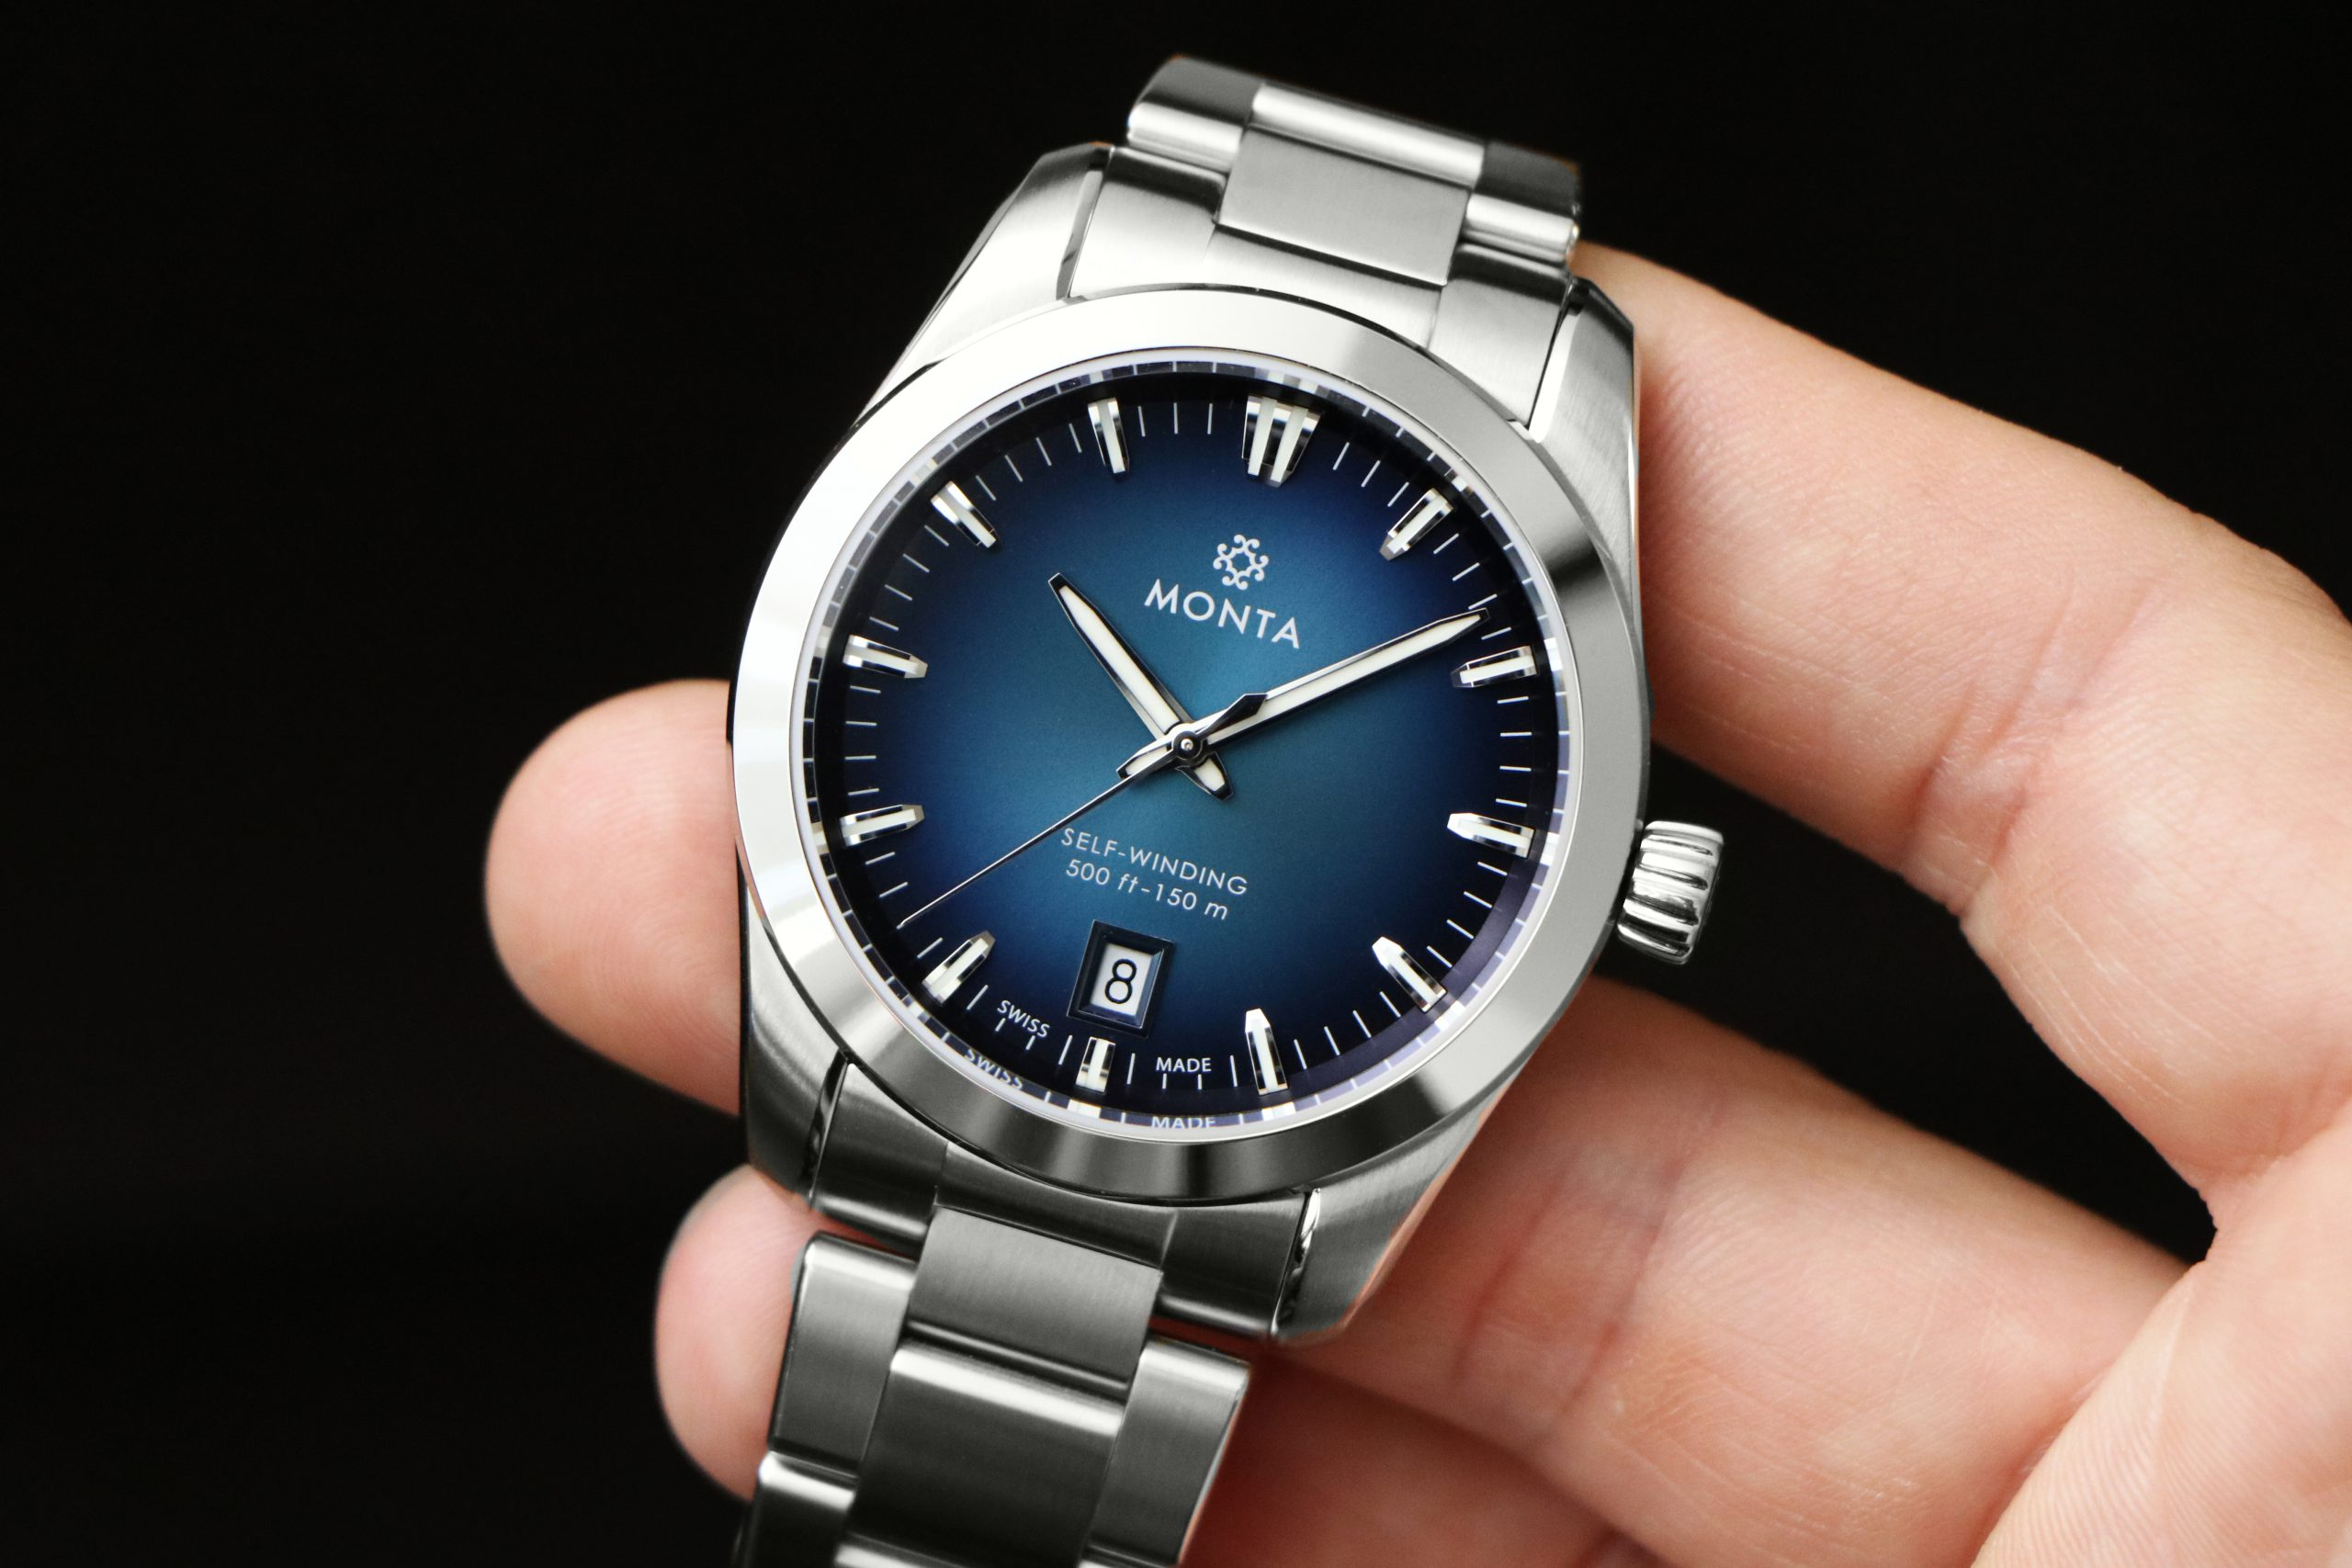 5 of the best watches released in 2020 under $3k, including Grand Seiko, Bulgari and Monta